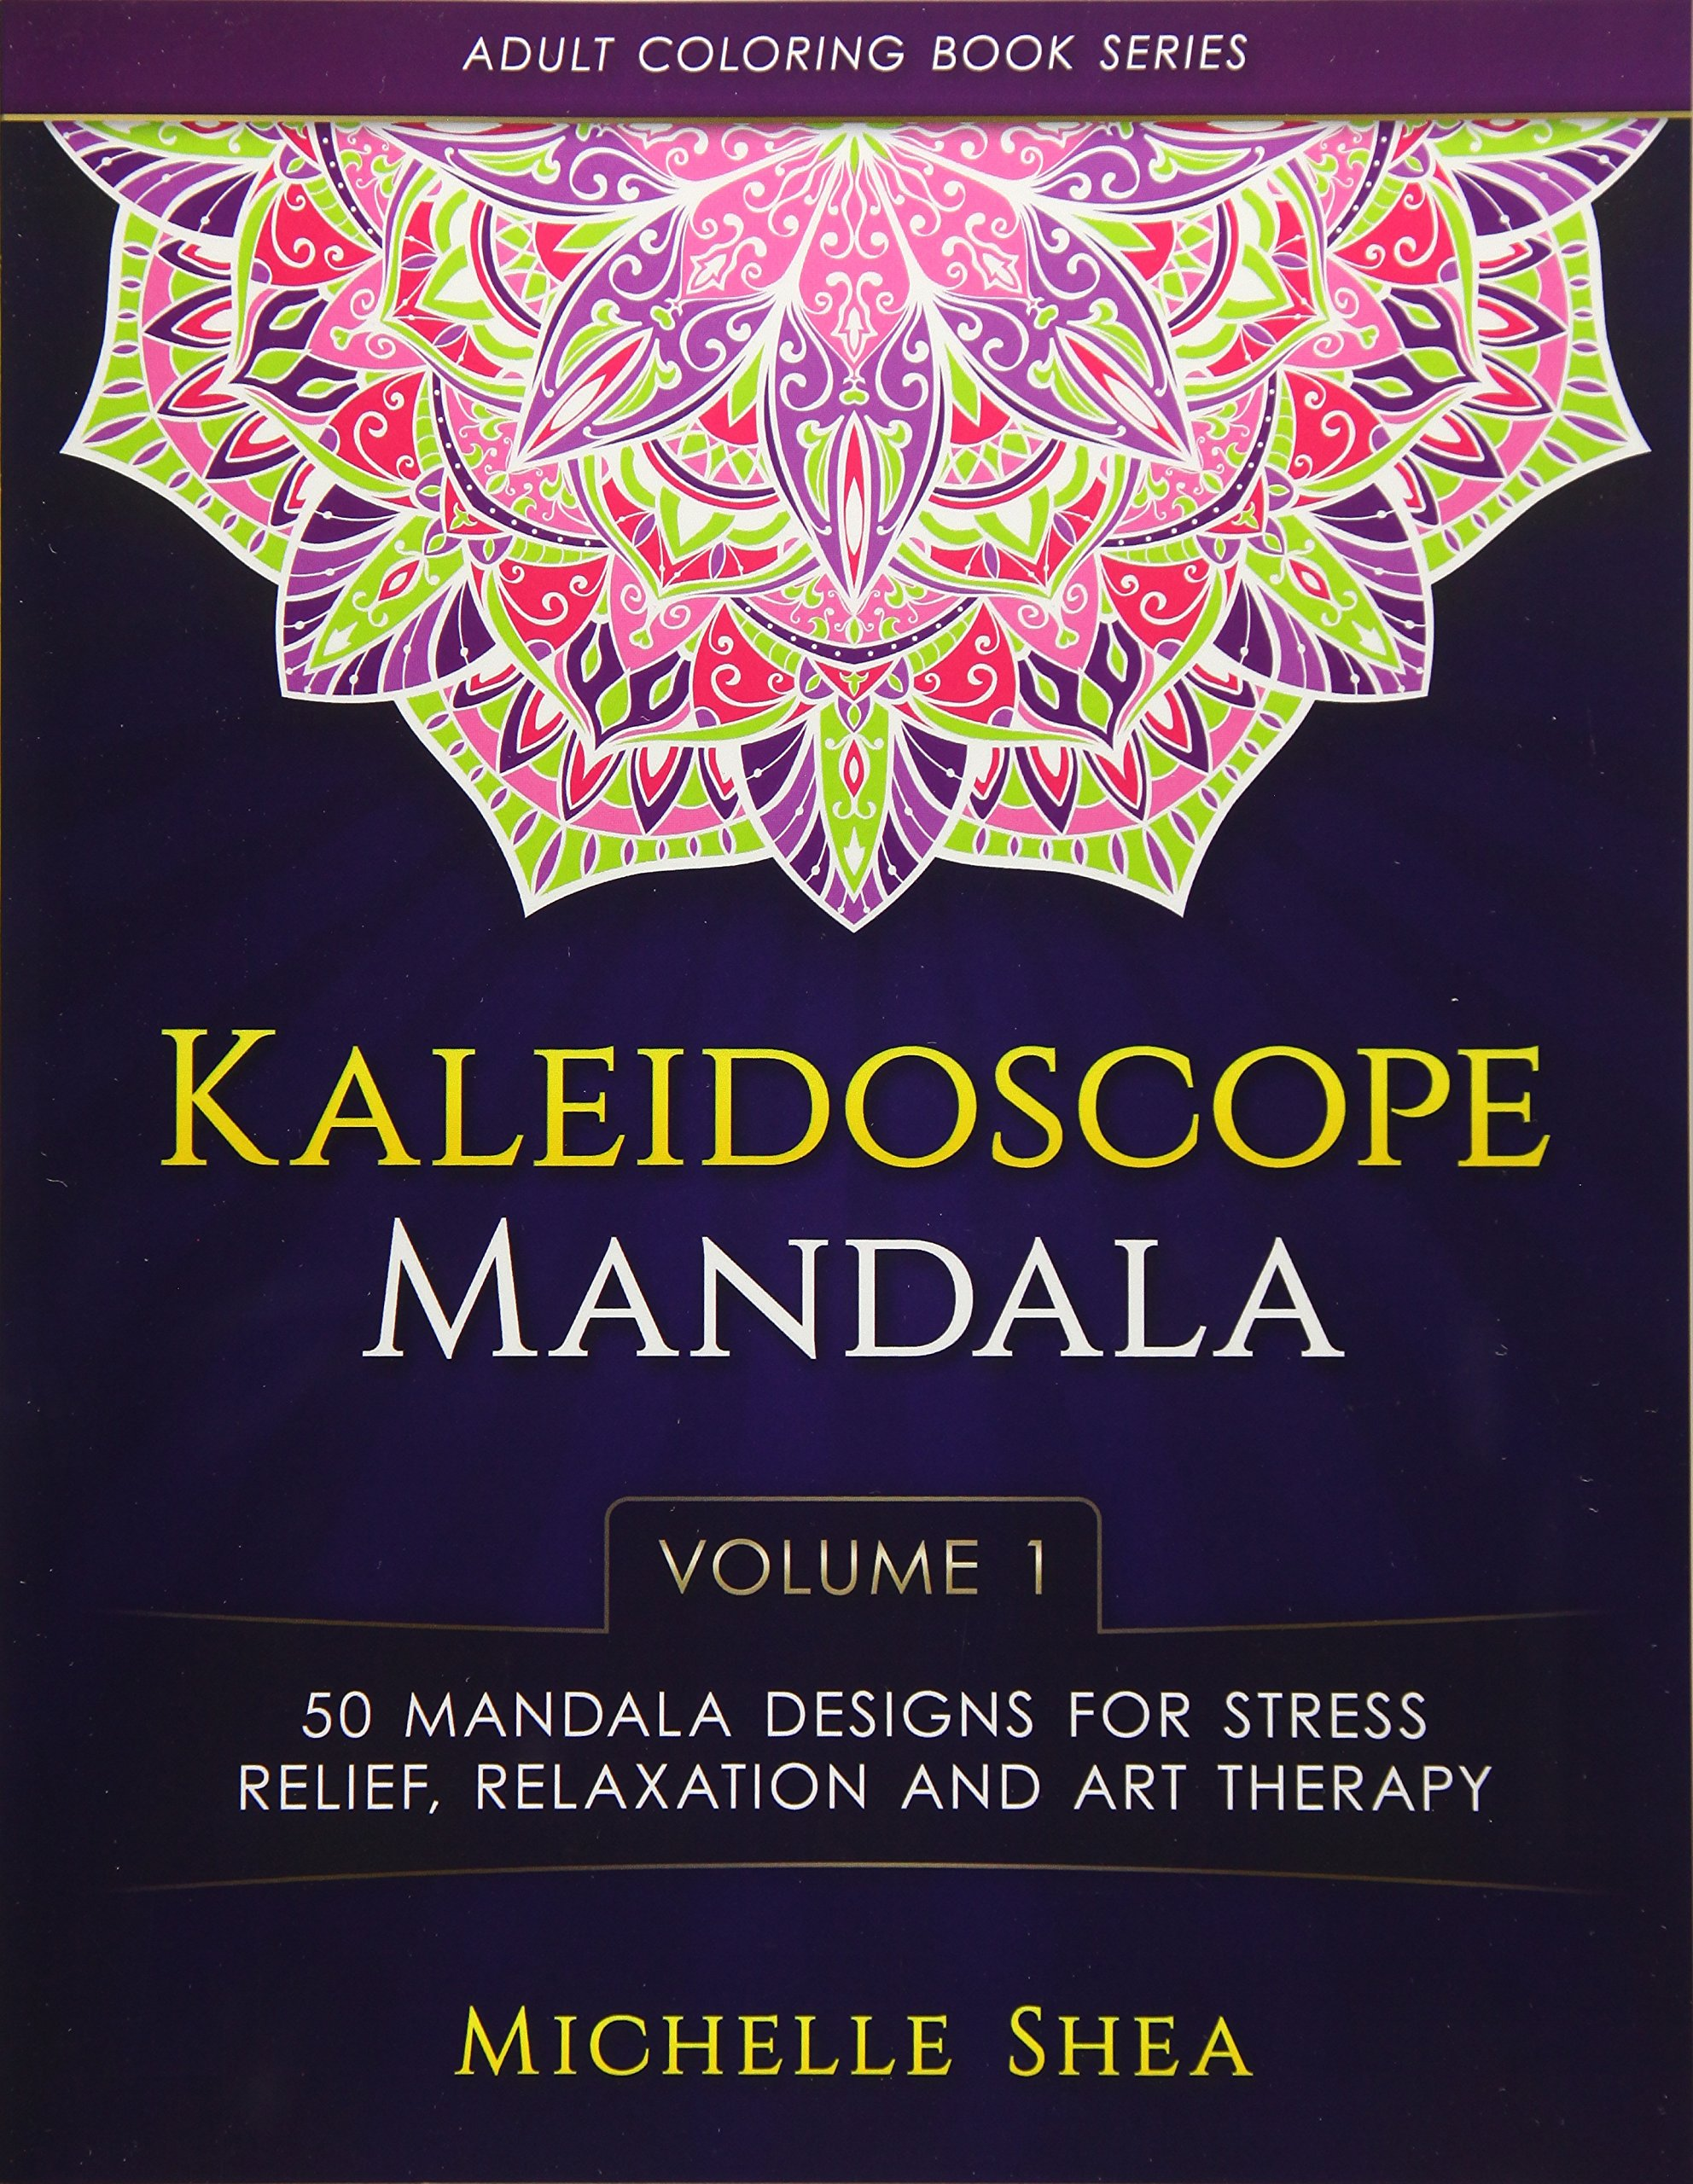 The Kaleidoscope Mandala Coloring Book: 50 Mandala Designs For Stress Relief, Relaxation and Art Therapy (Volume 1) (Adult Coloring Book Series) pdf epub